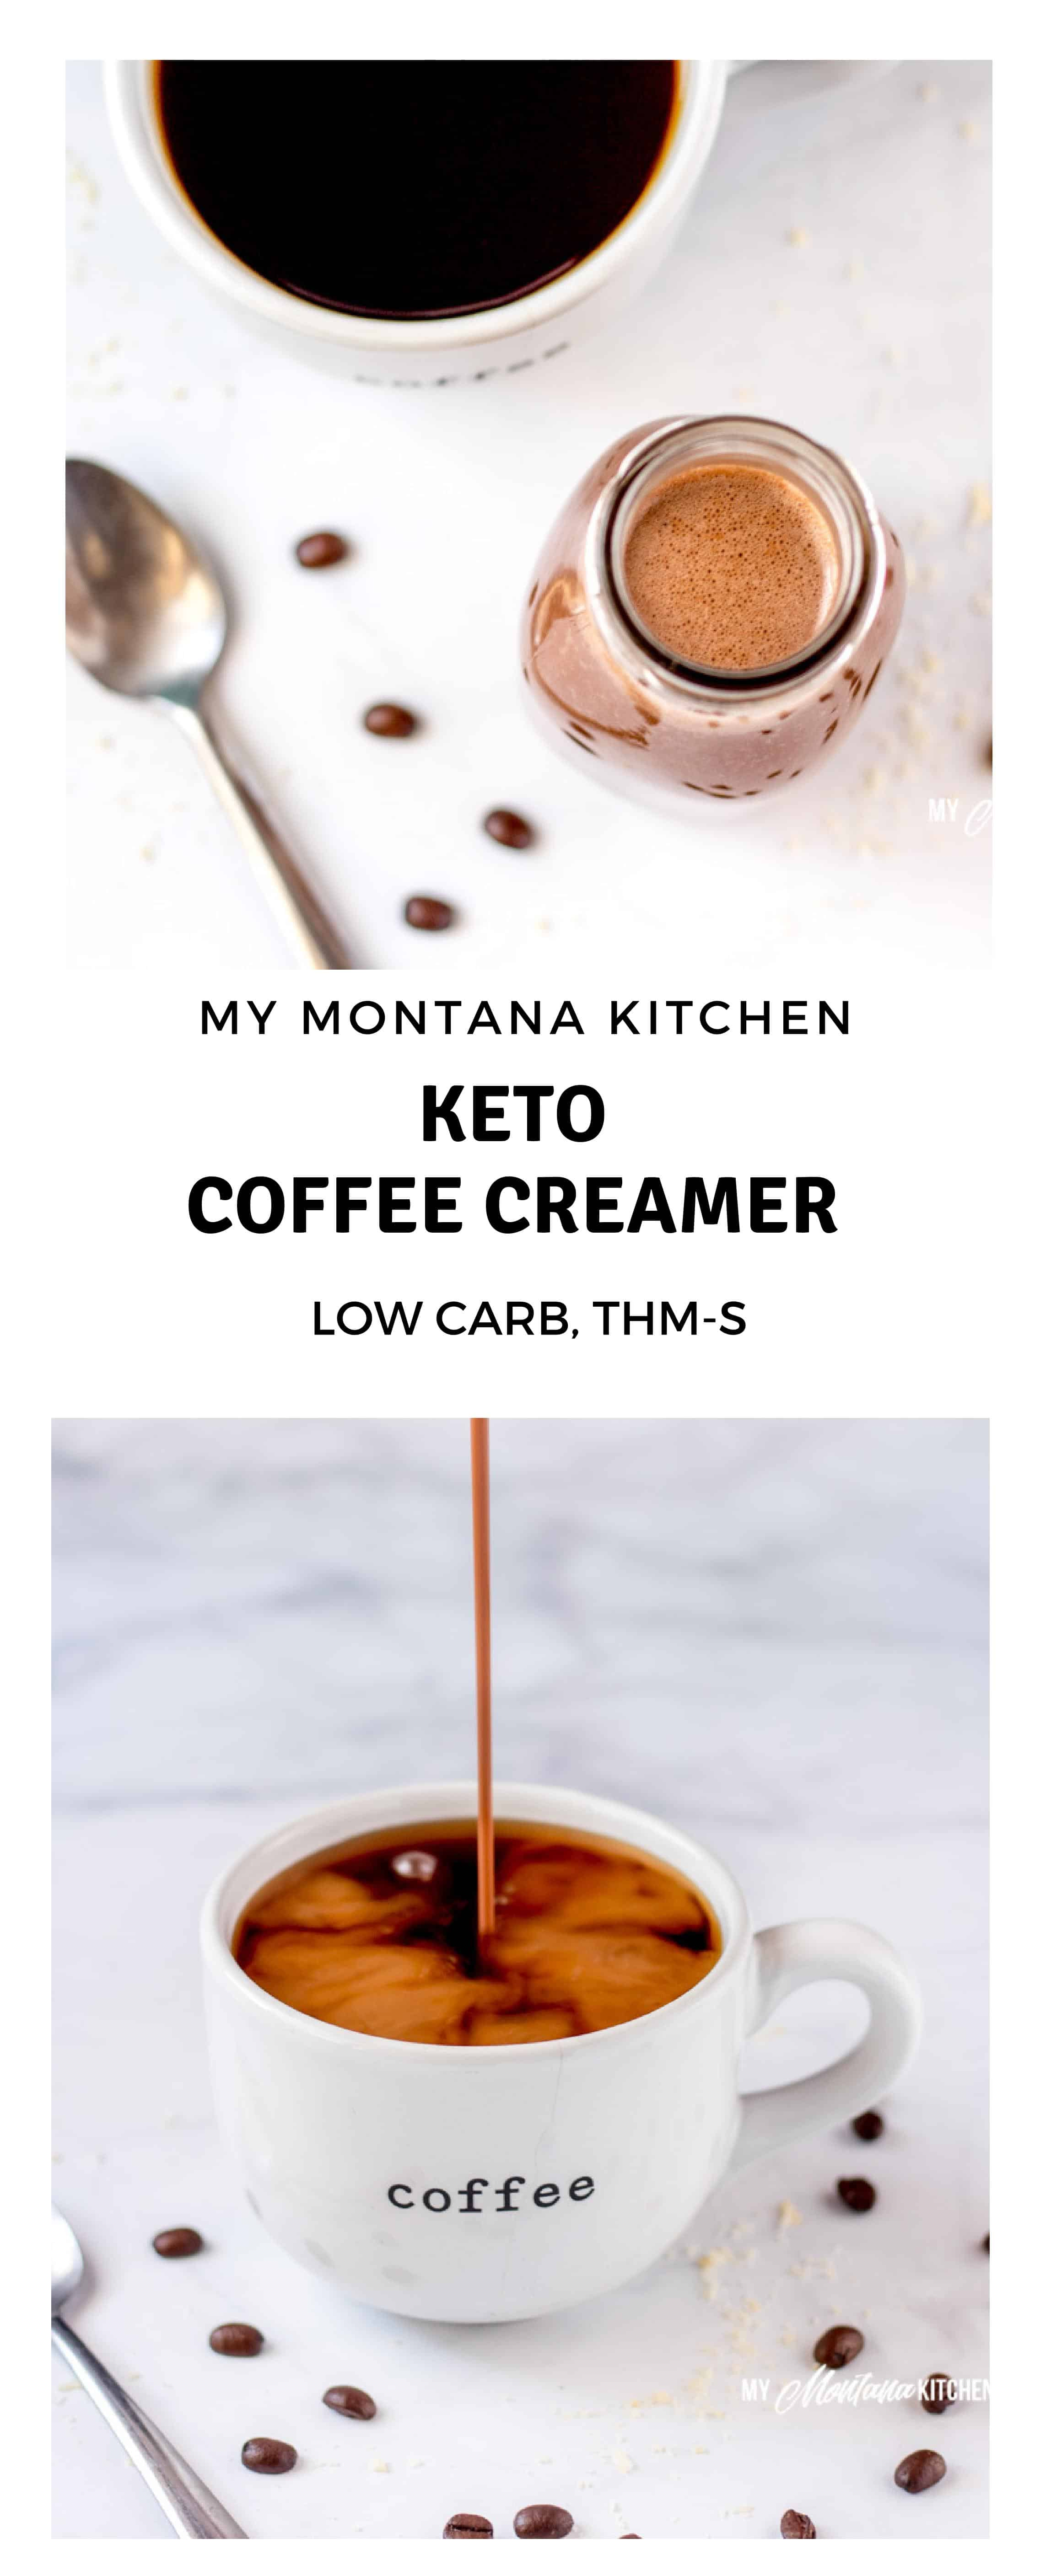 If you are missing coffee creamer on your keto diet, I have good news for you! This easy keto friendly creamer is easily made in less than 5 minutes and only uses a handful of ingredients! Rich, creamy, and so satisfying! #keto #ketocoffee #ketocoffeecreamer #coffeecreamer #sugarfree #lowcarb #trimhealthymama #thmcoffeecreamer #lowcarbhighfat #atkins #paleocoffeecreamer #paleo